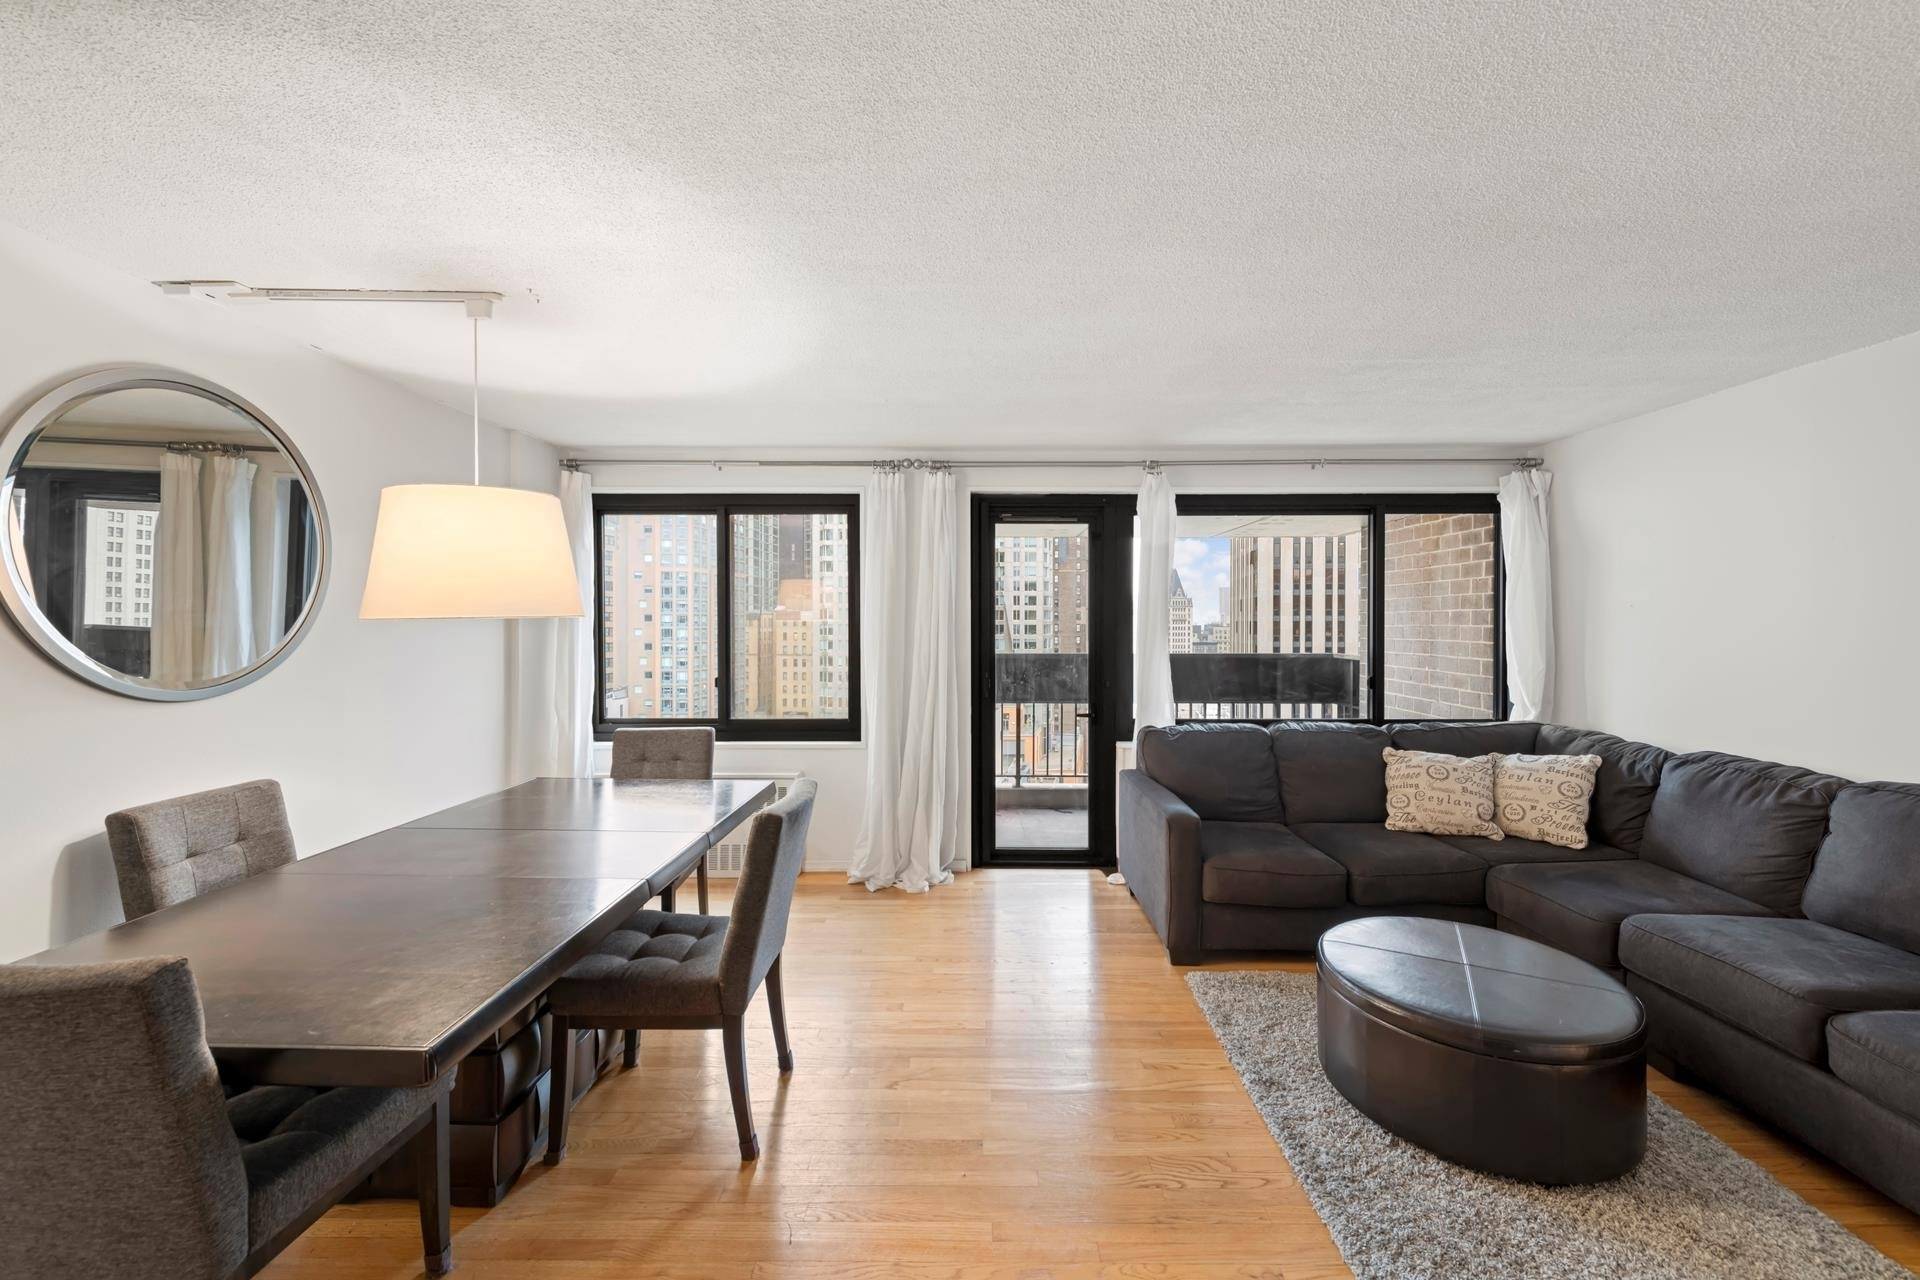 Co-op Properties for Sale at Southbridge Towers, 90 Gold St, 22K Financial District, New York, NY 10038